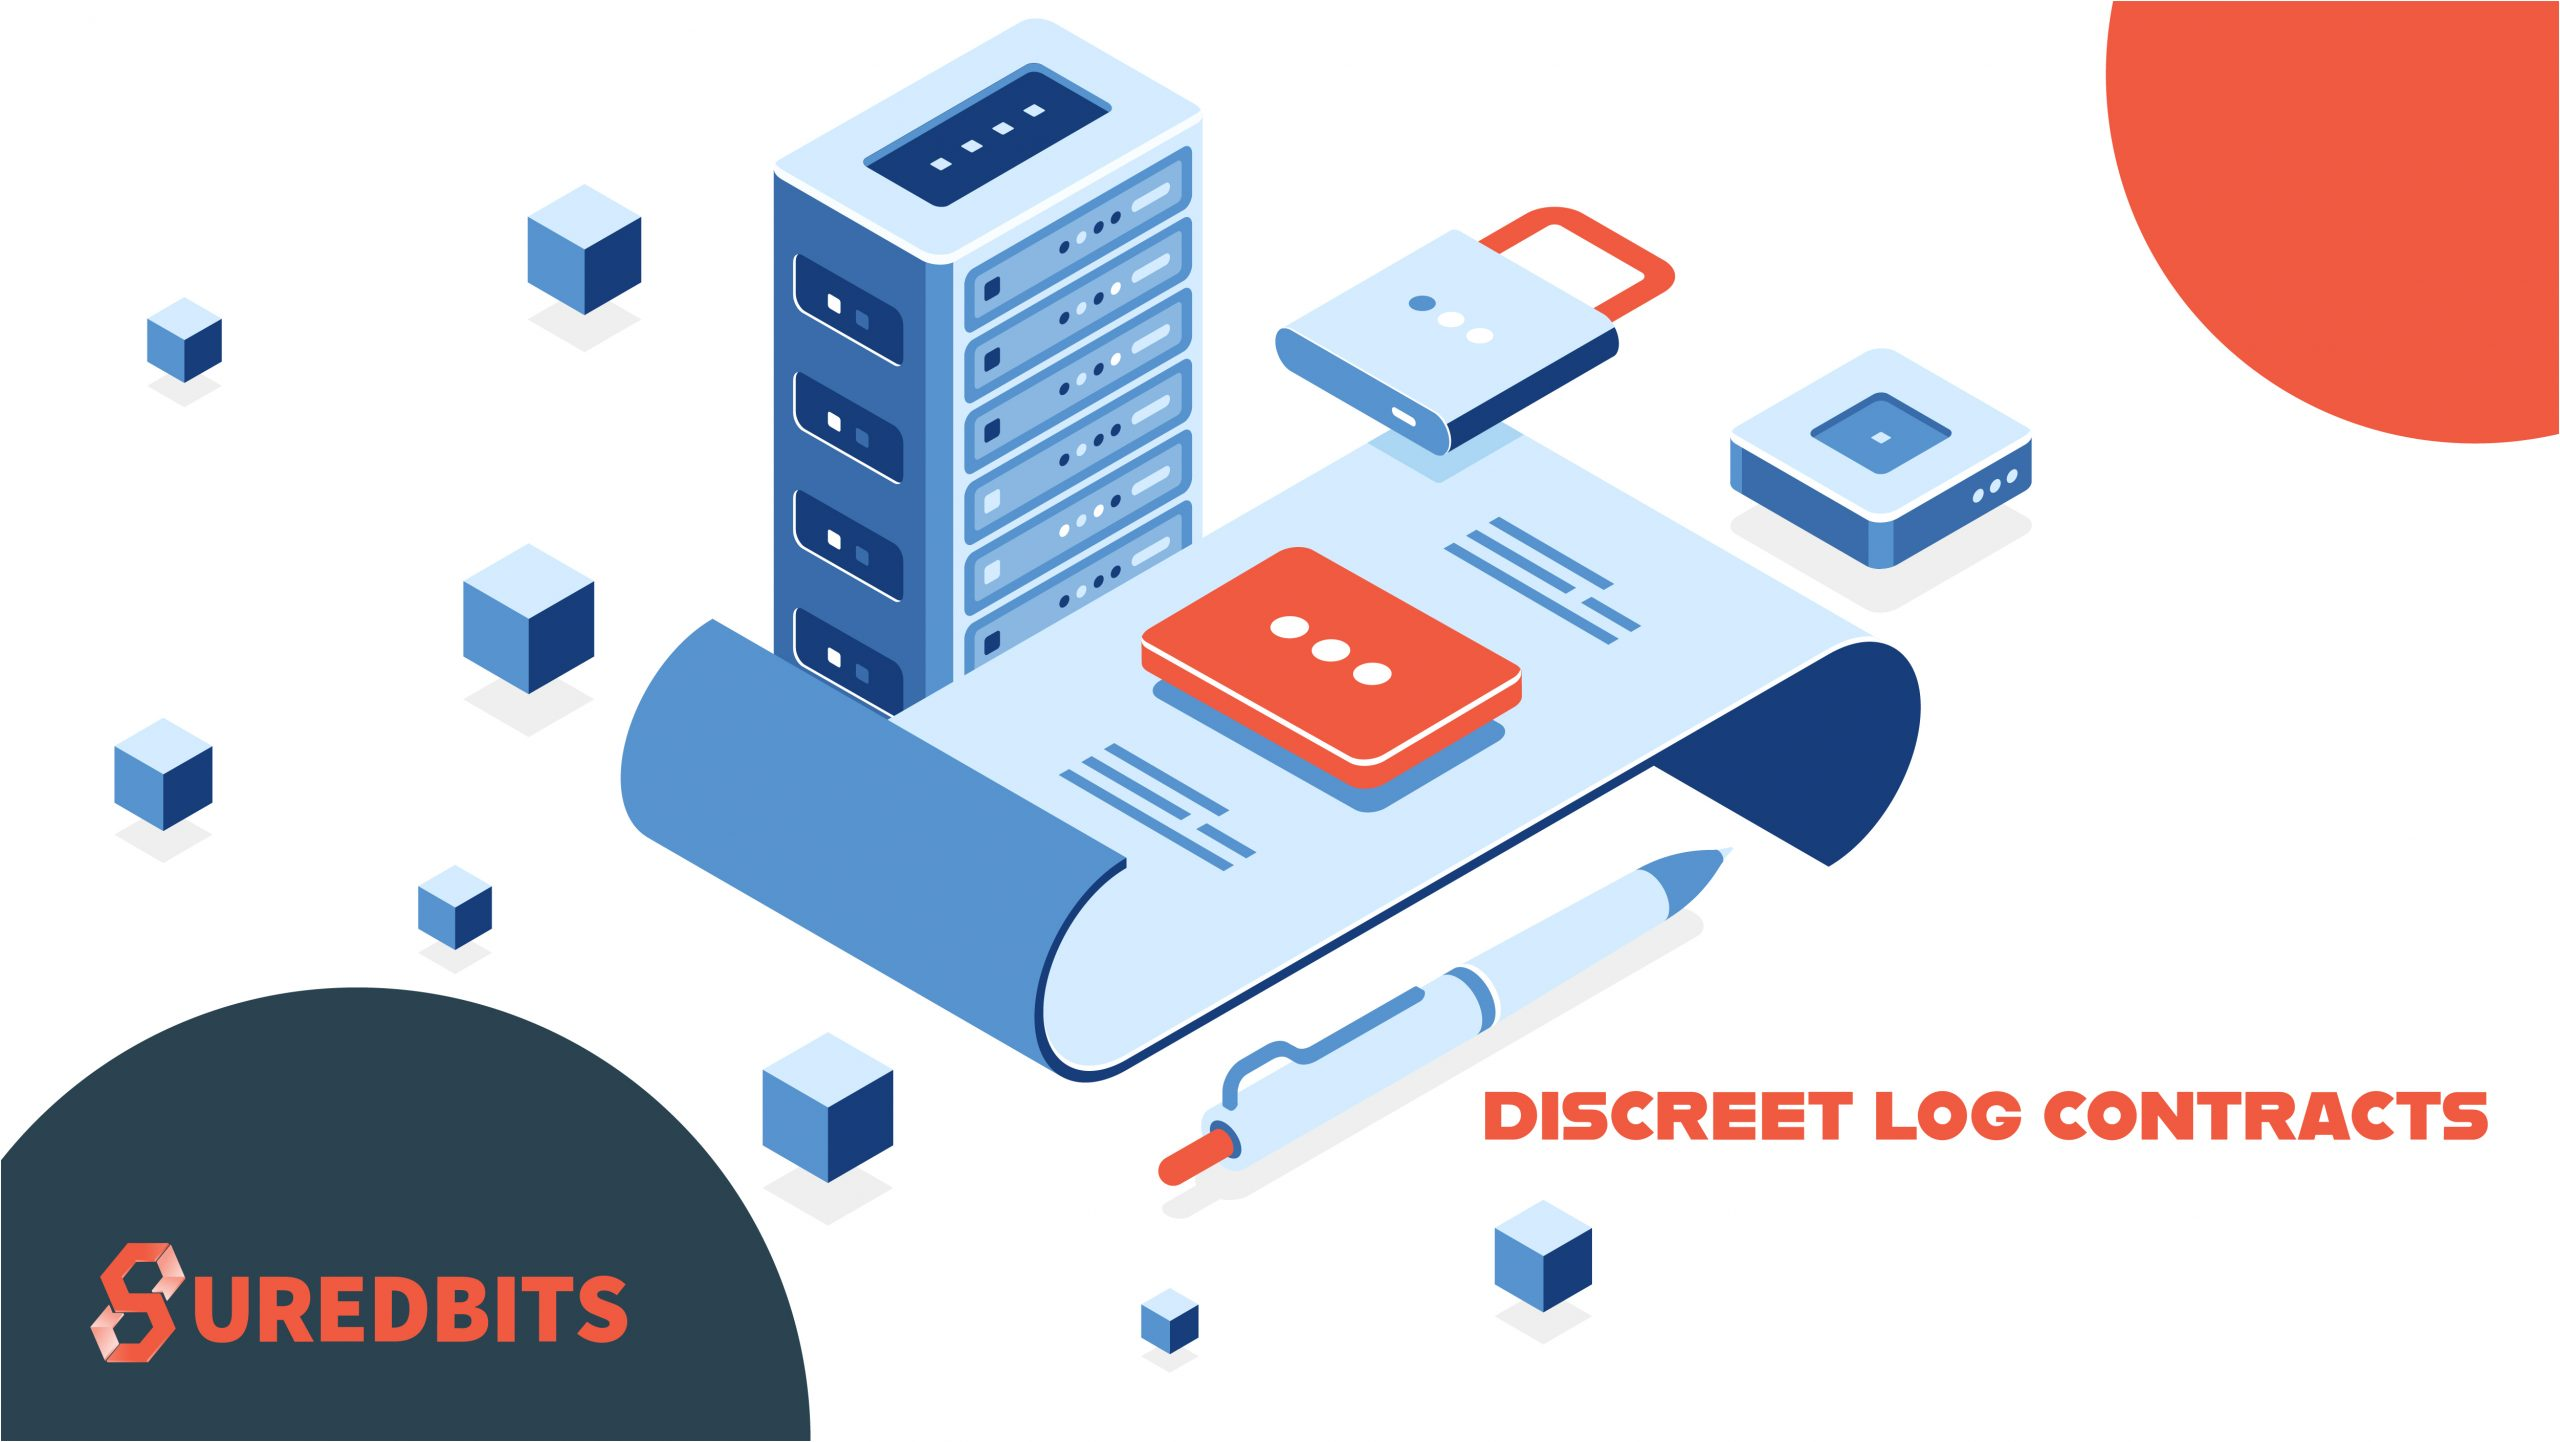 Discreet Log Contracts